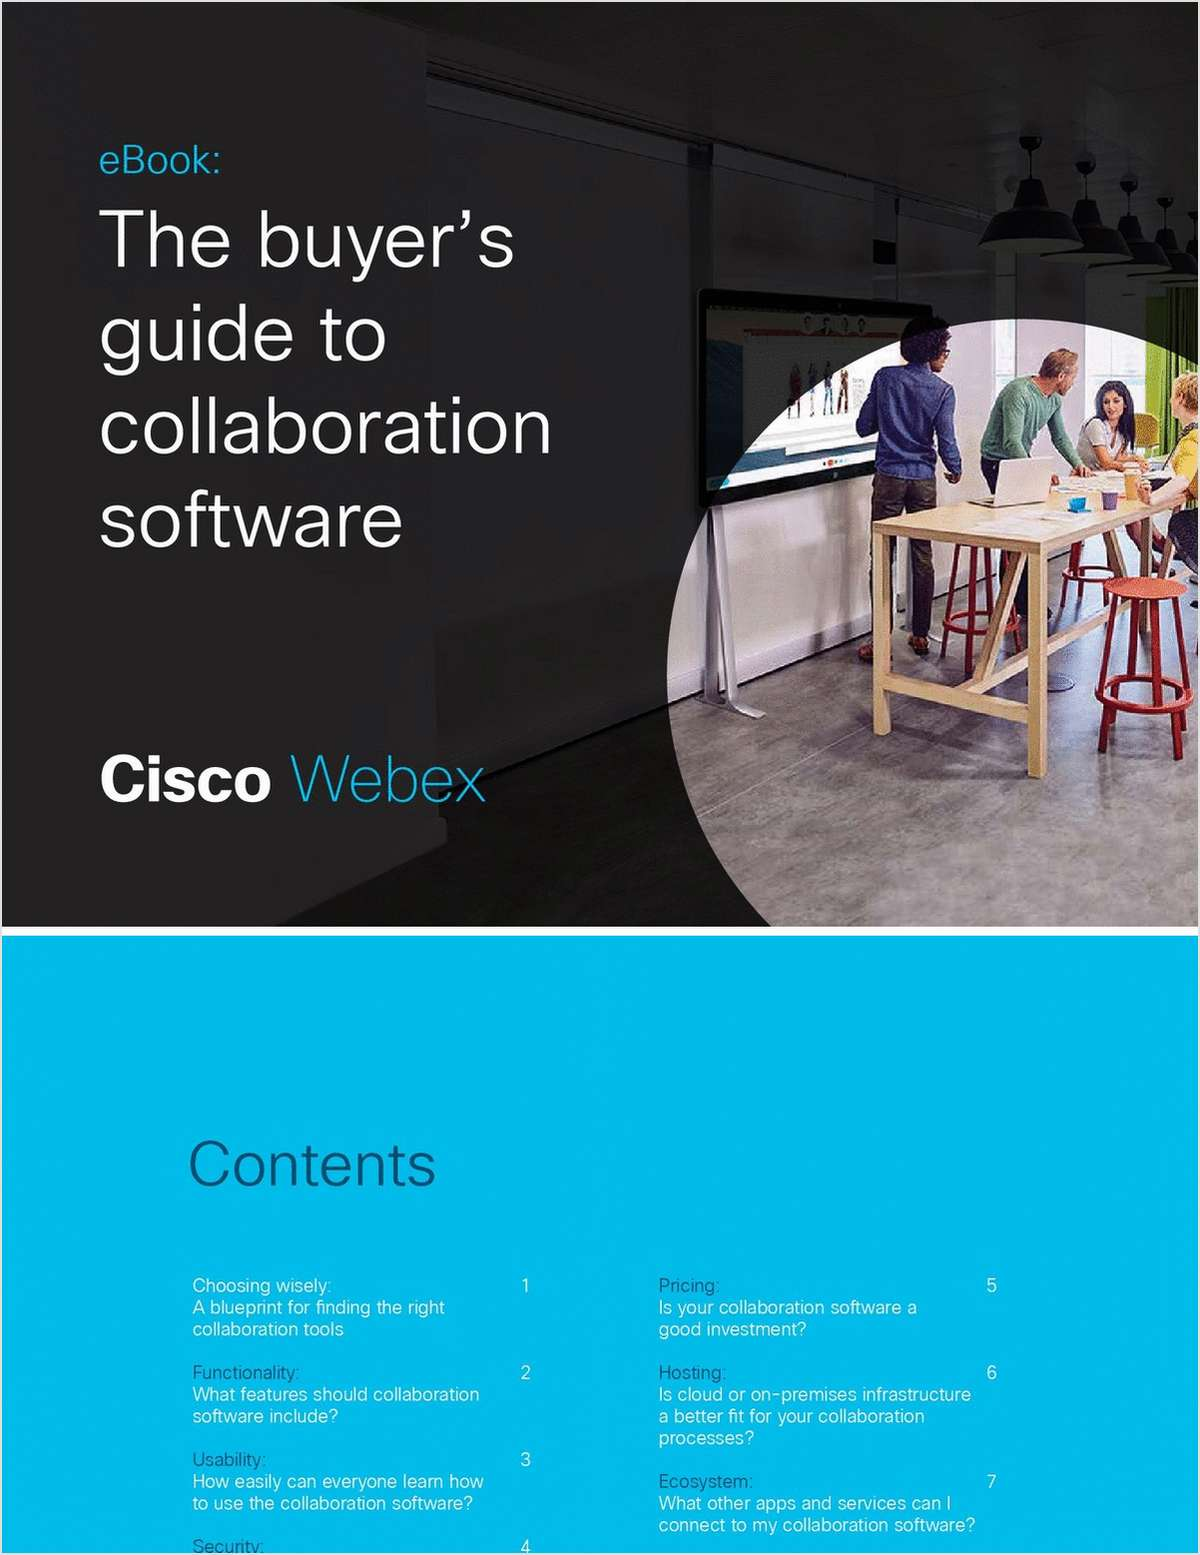 The Buyer's Guide to Collaboration Software